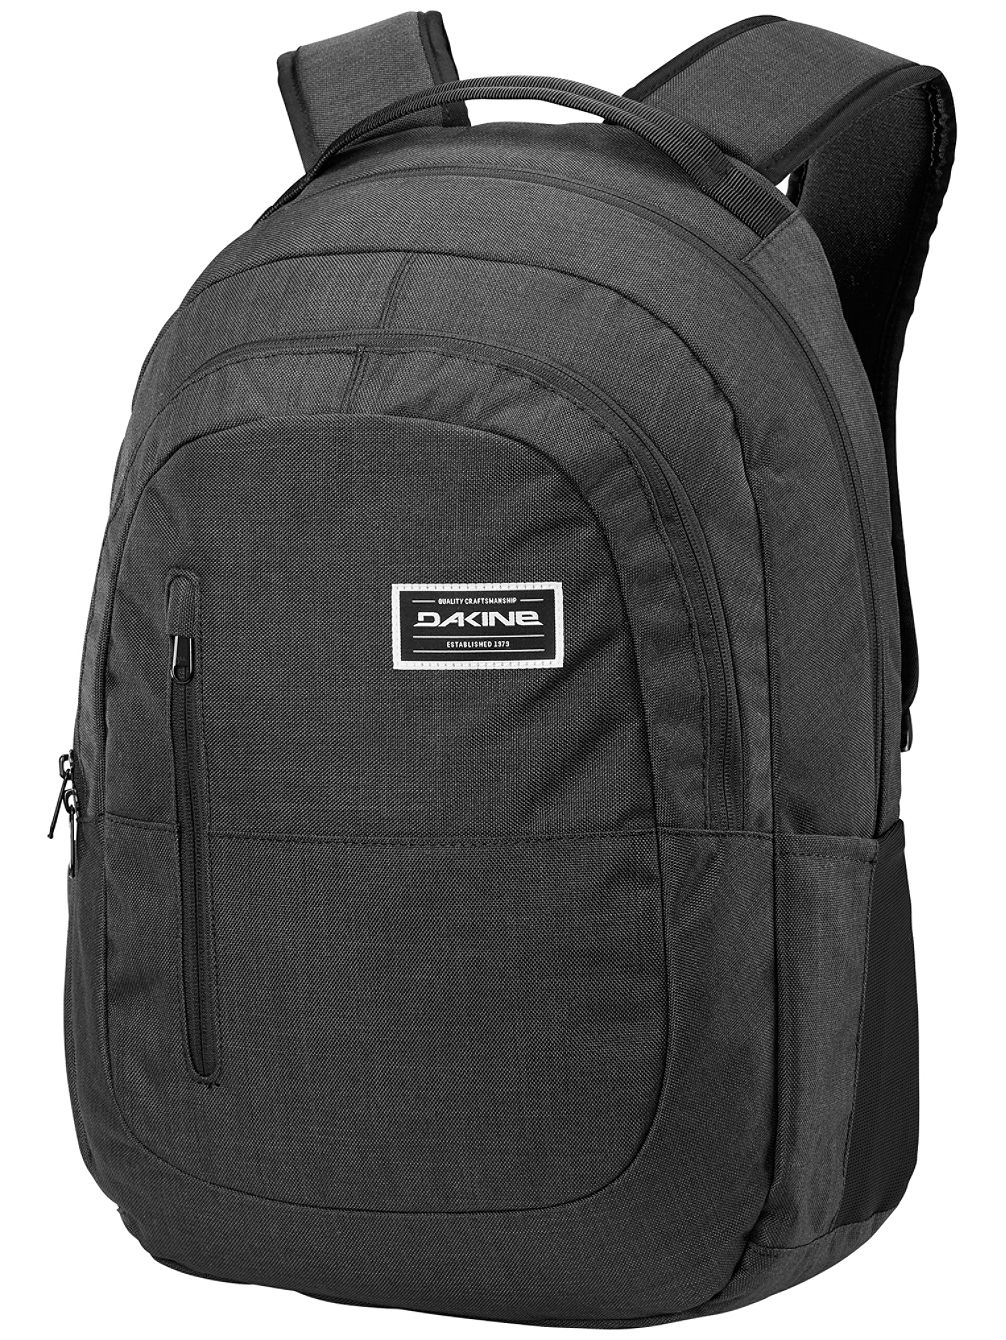 Foundation 26L Backpack